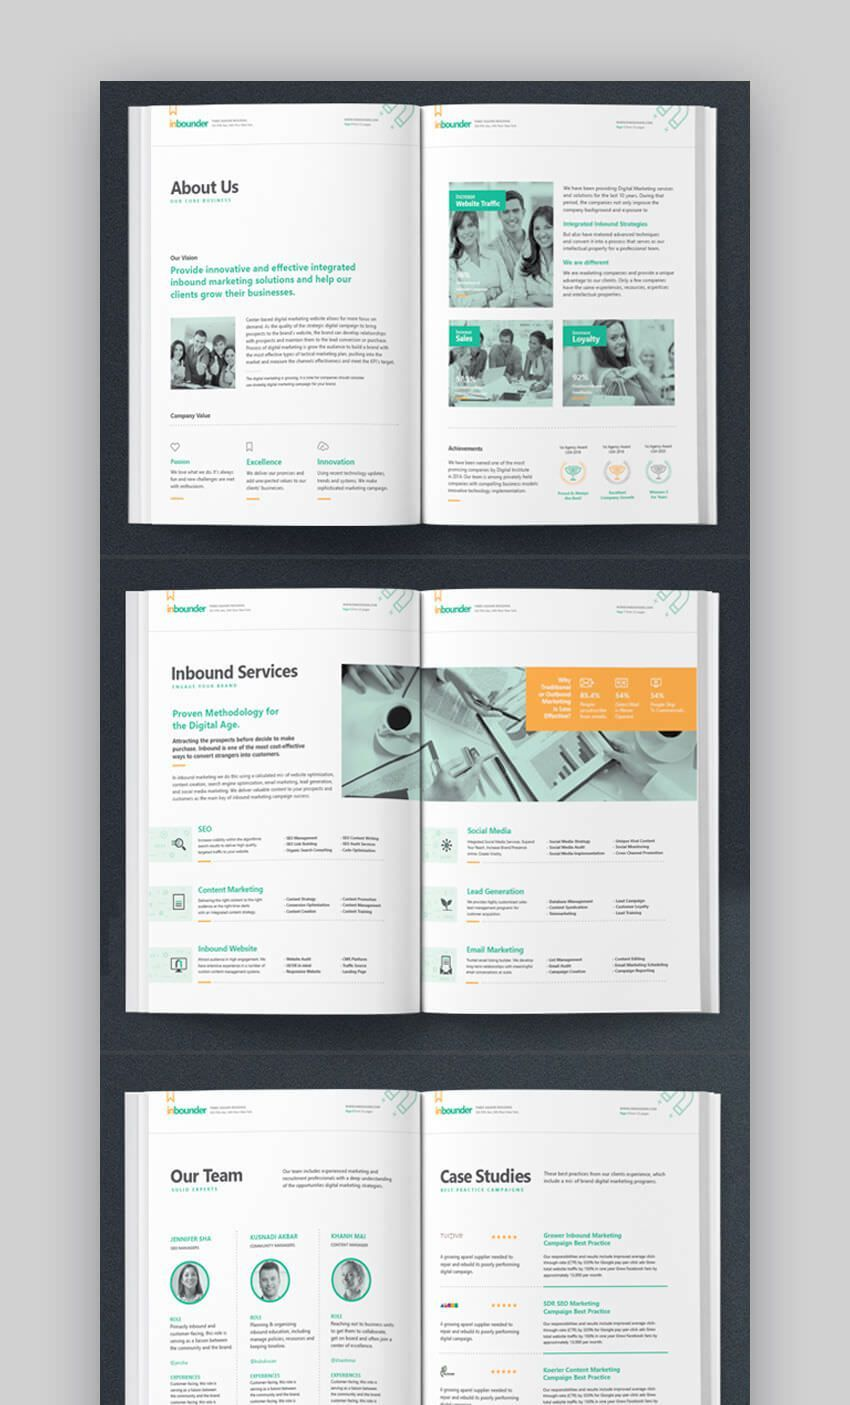 002 Outstanding Social Media Proposal Template 2019 High Resolution Full